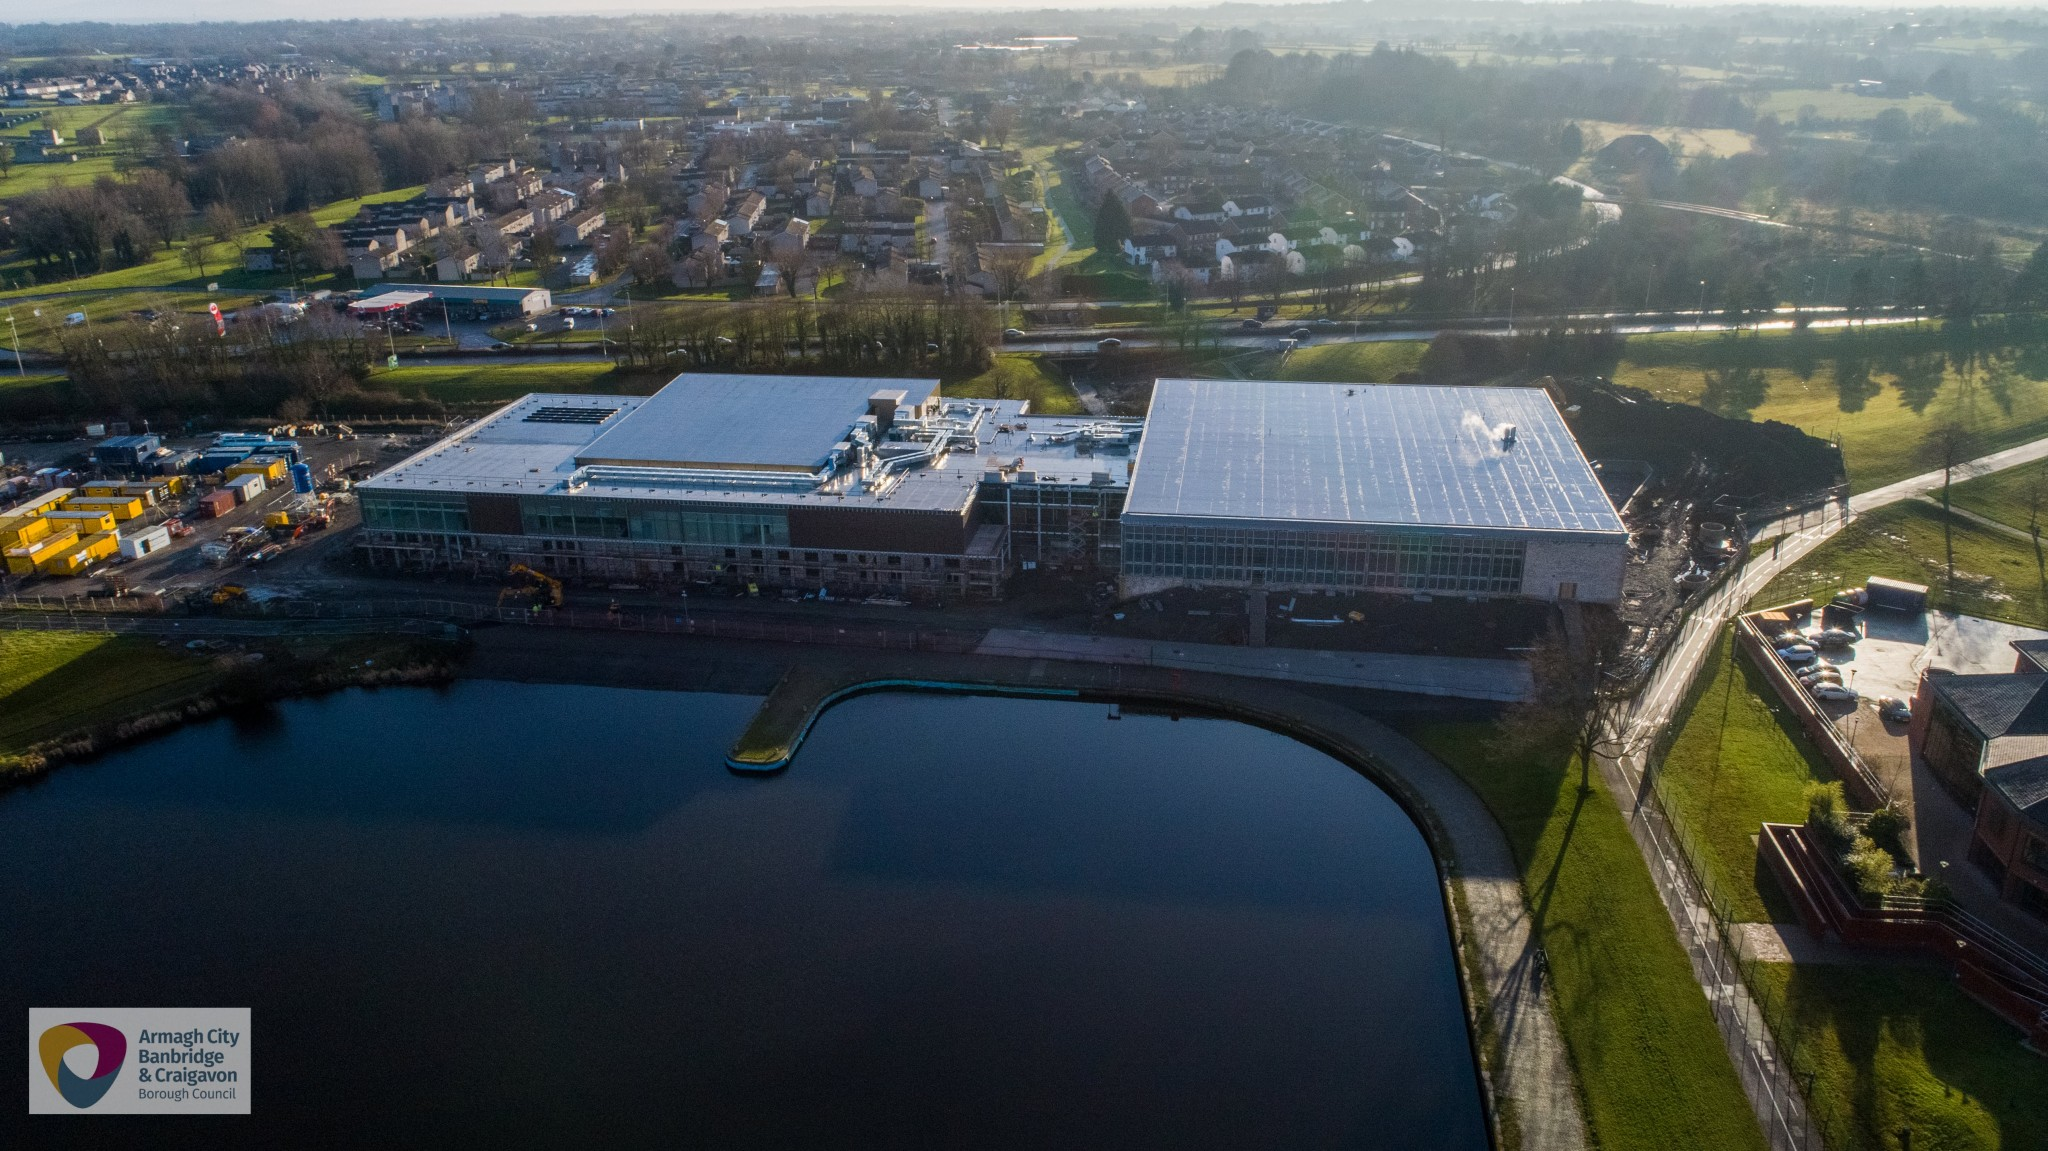 New Craigavon leisure centre on track to open on 15 August 2020